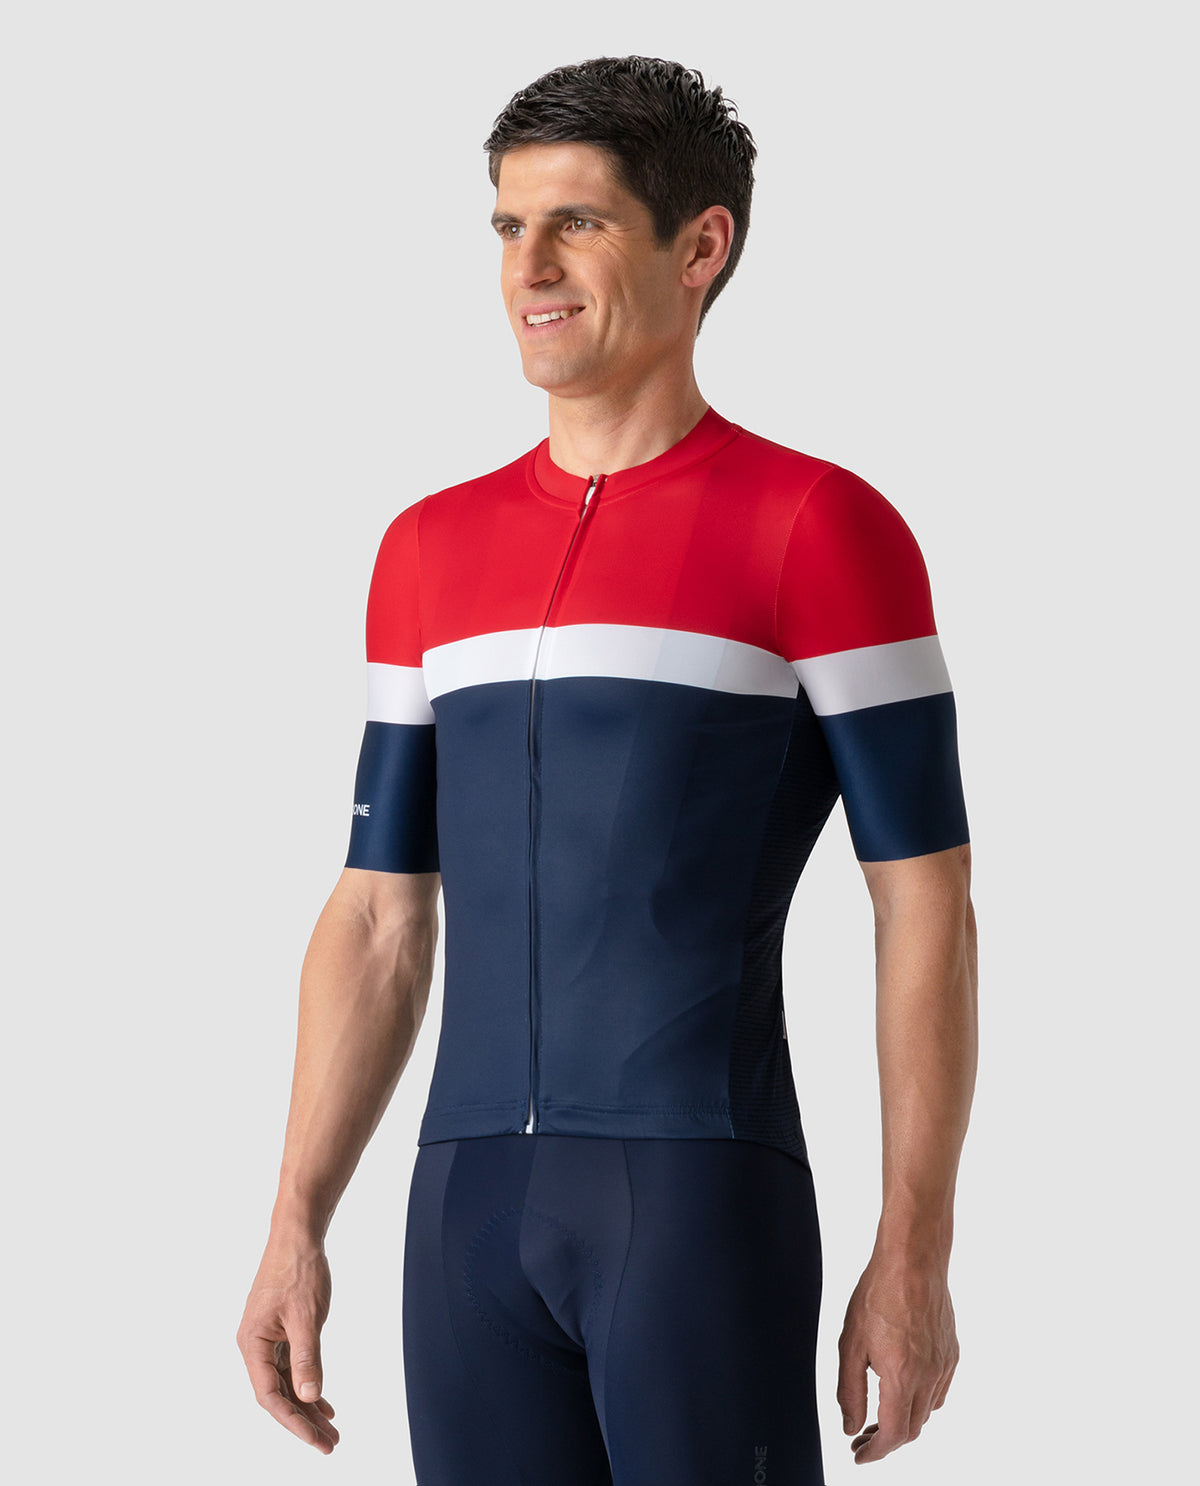 Livery Jersey GT Red/Blue